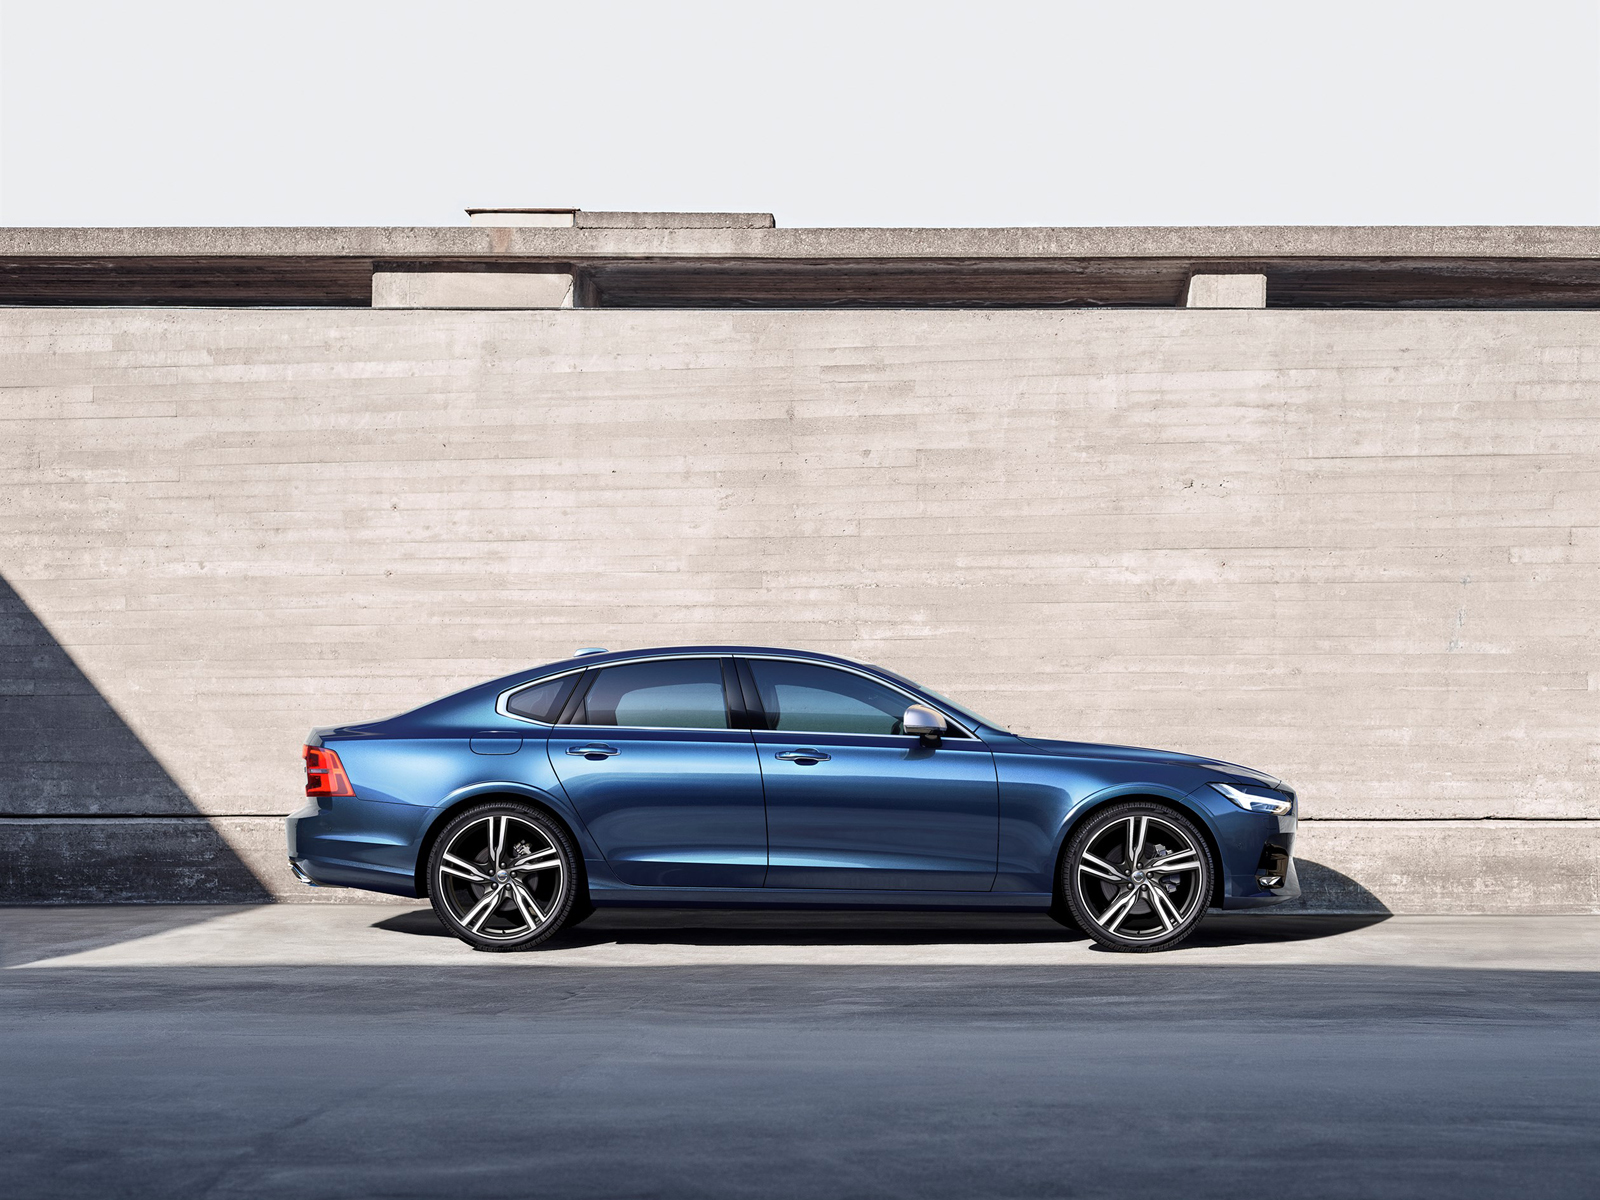 Volvo S90 Wallpapers HD